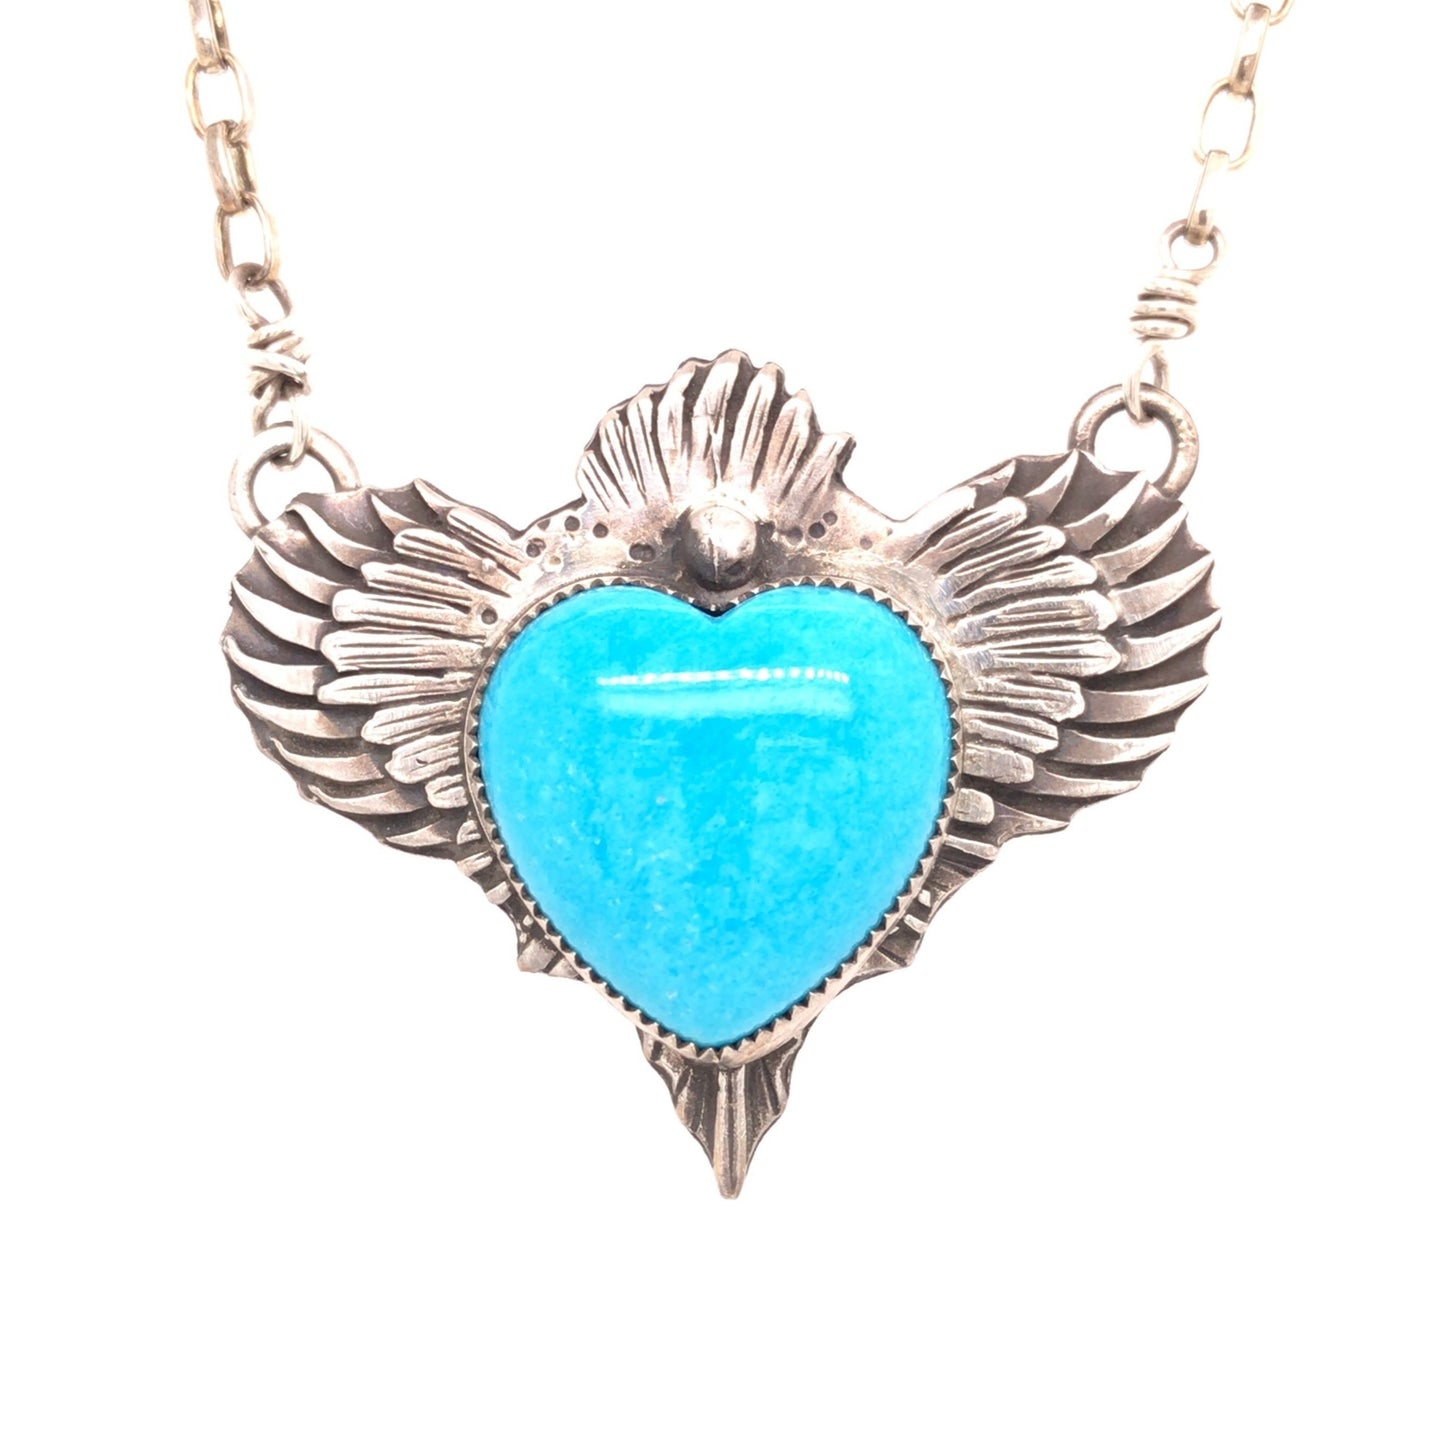 Sacred Heart Turquoise Pendant Necklace